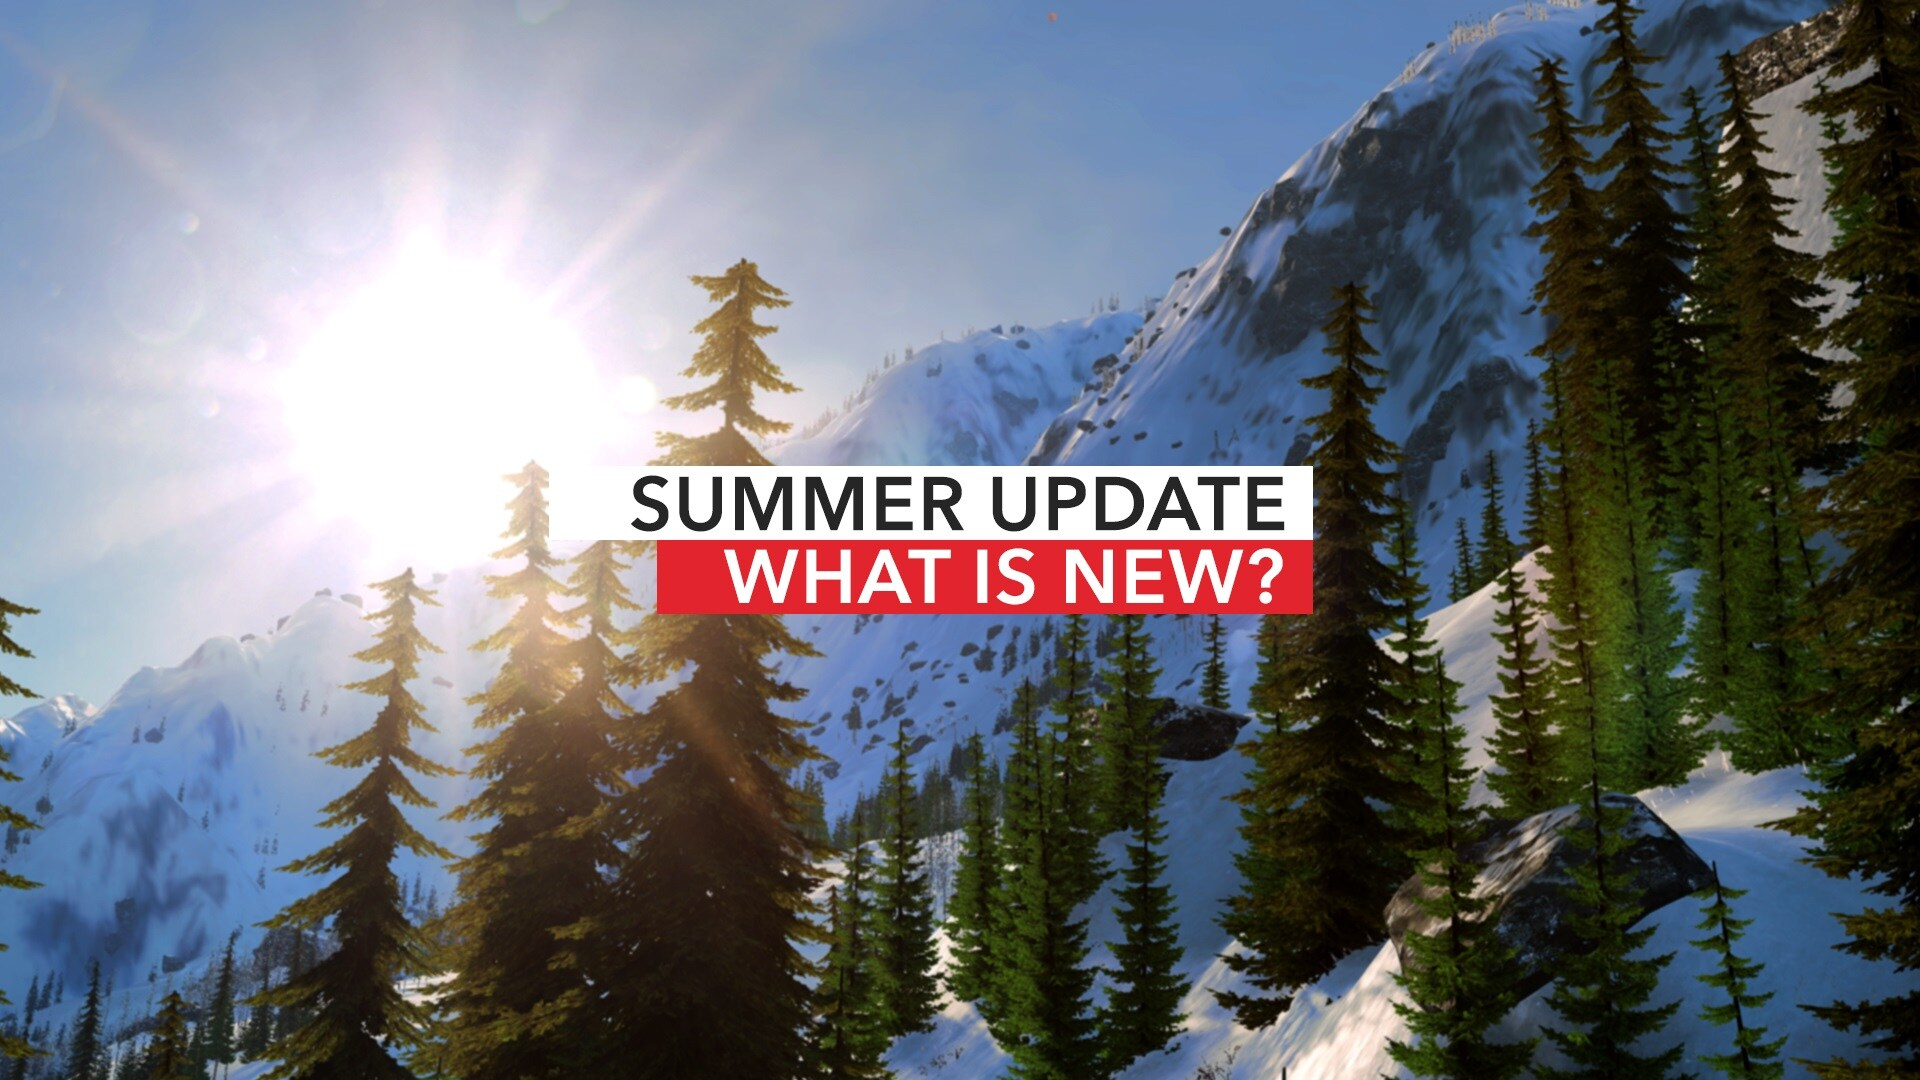 11-06-SummerUpdate-HEADER